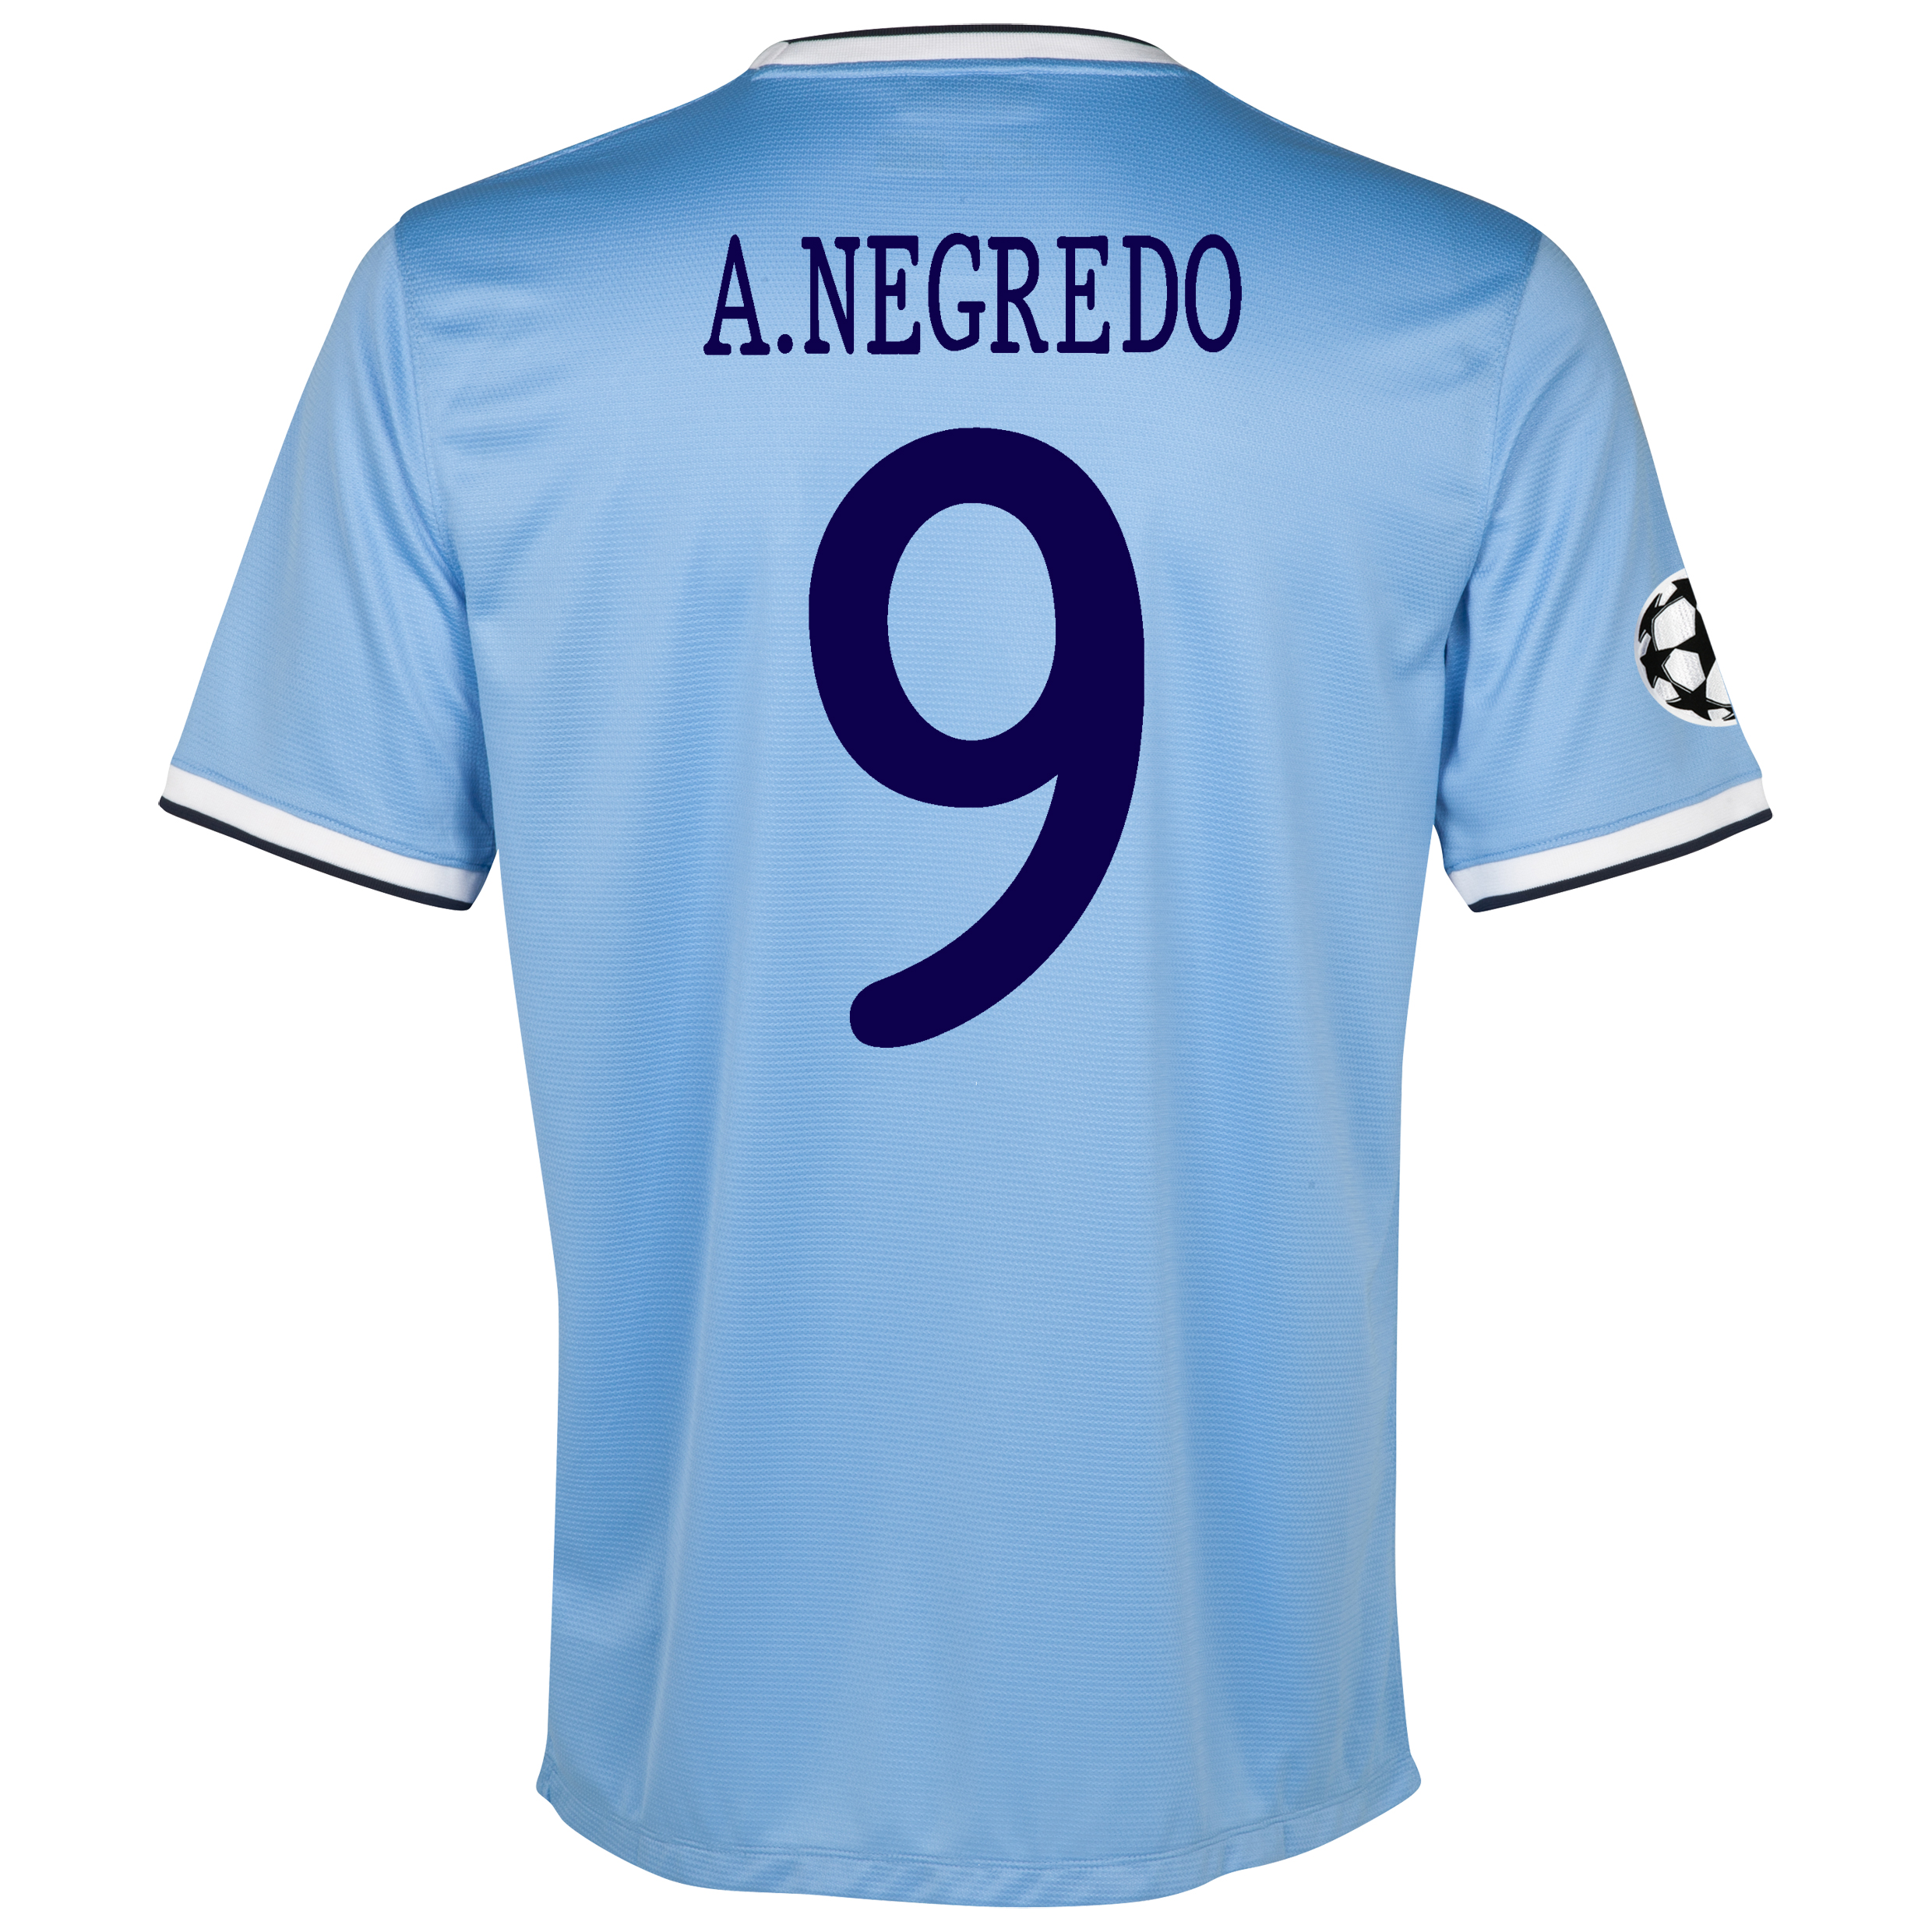 Manchester City UEFA Champions League Home Shirt 2013/14 with A.Negredo 9 printing